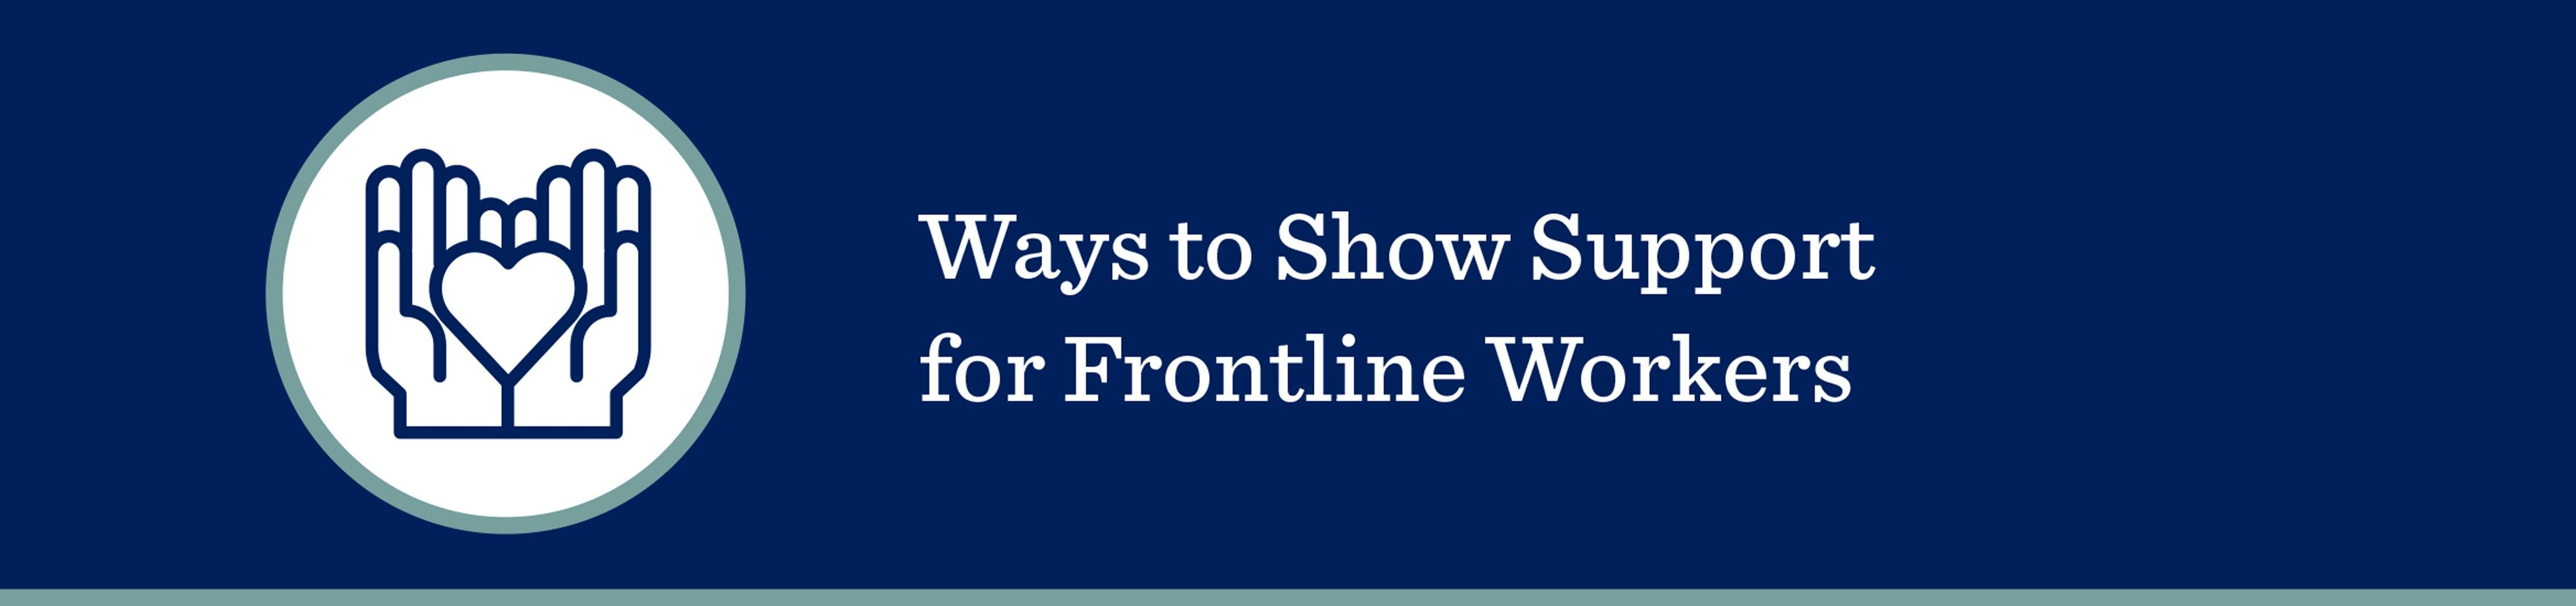 ways to show support for frontline workers